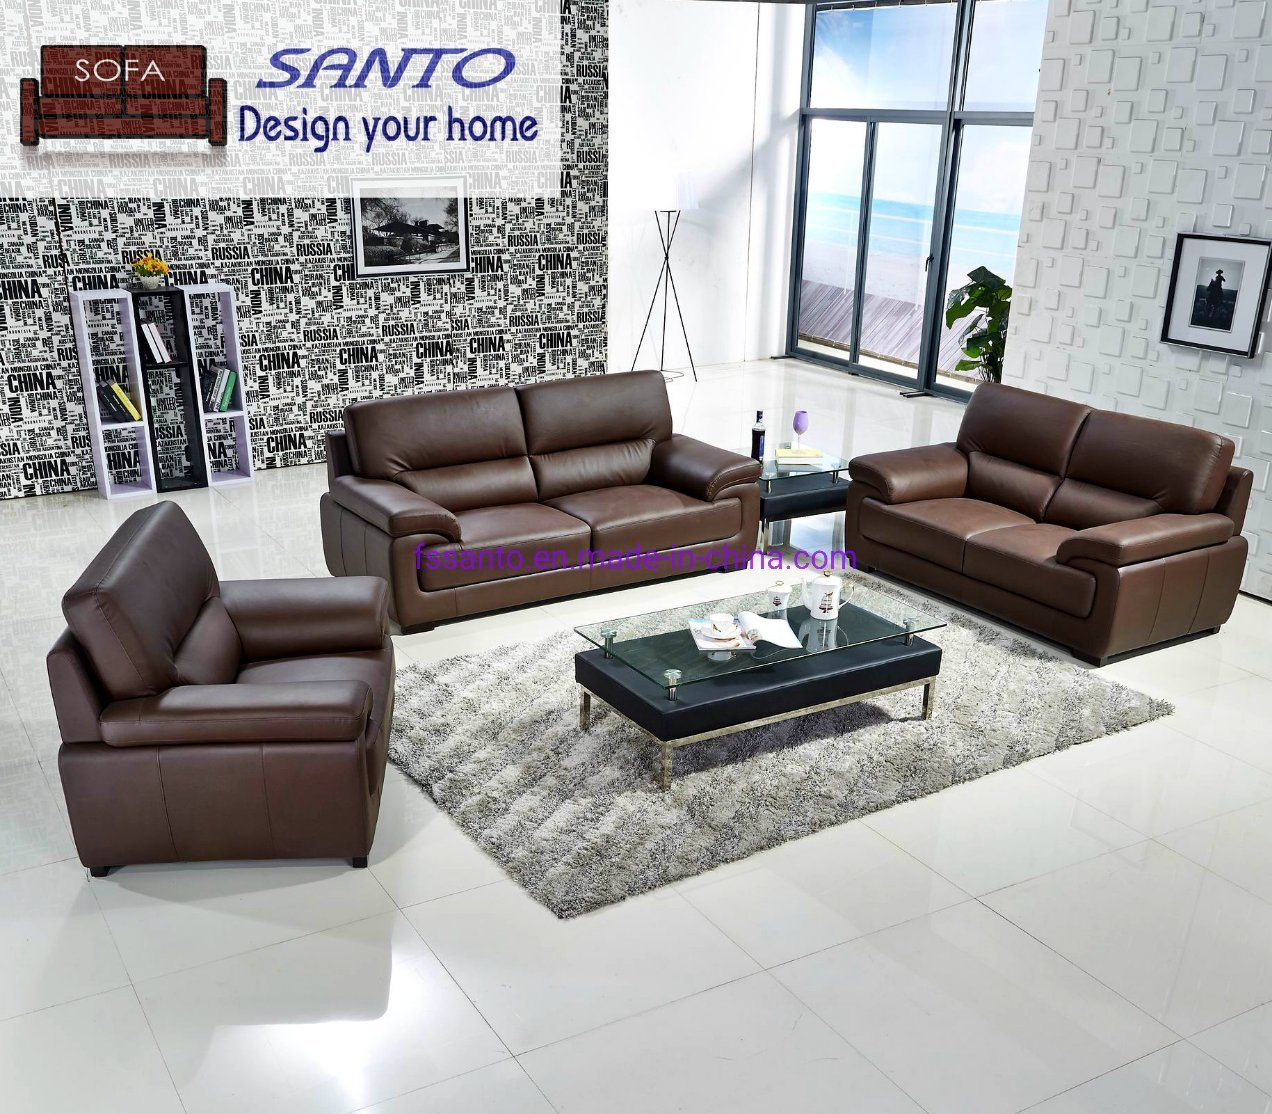 China New Design Leather Sofa Set 3 2 1 Seat Royal Furniture Sofa Set Dubai Sofa Furniture Prices 1 2 3 Sofa Sets Leather Sofas And Home Furniture Luxury Lounge Sofa China Sofa